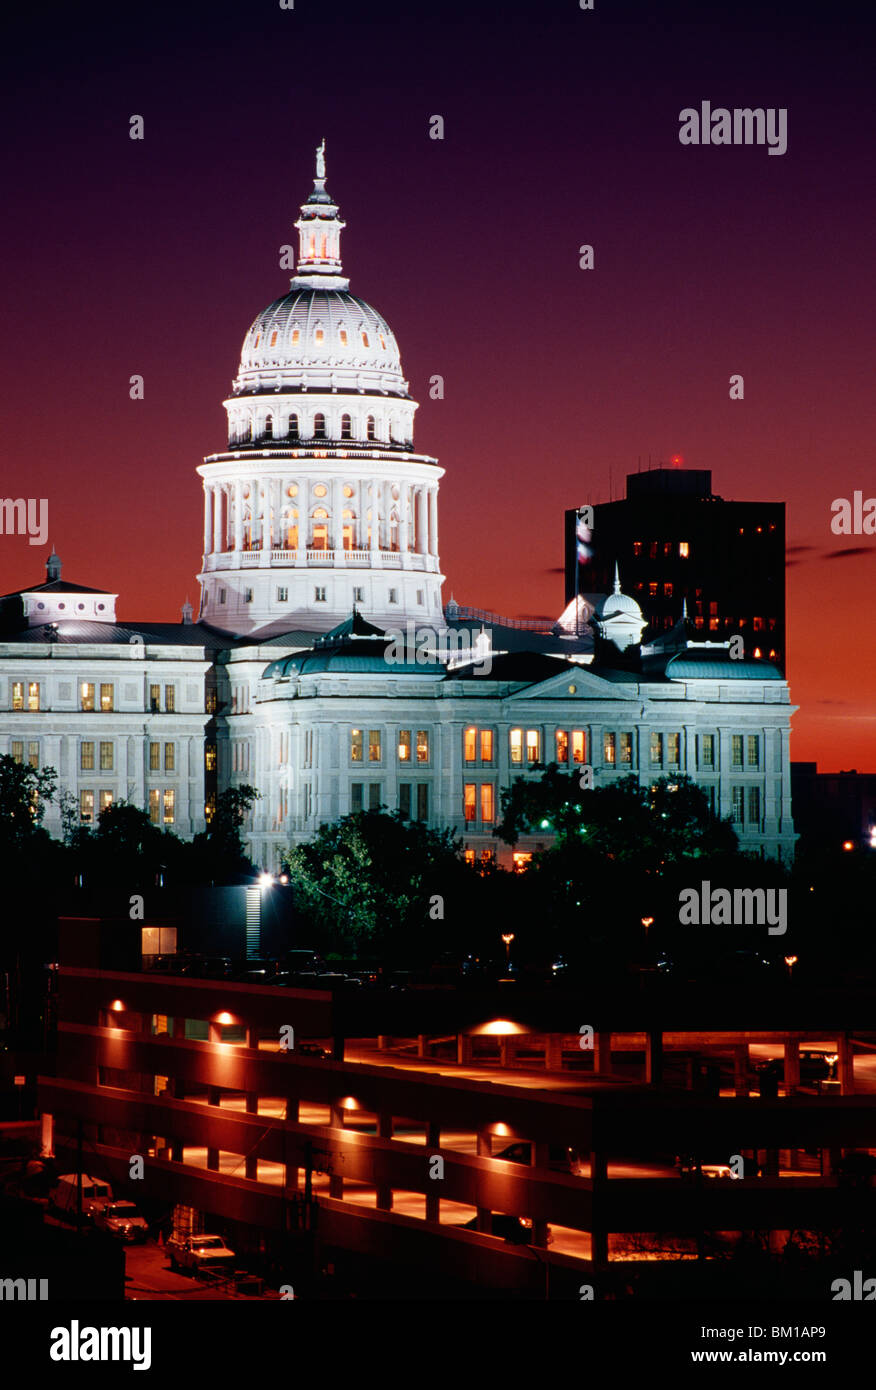 Government Building Lit Up At Night, Texas State Capitol, Austin, Texas, USA